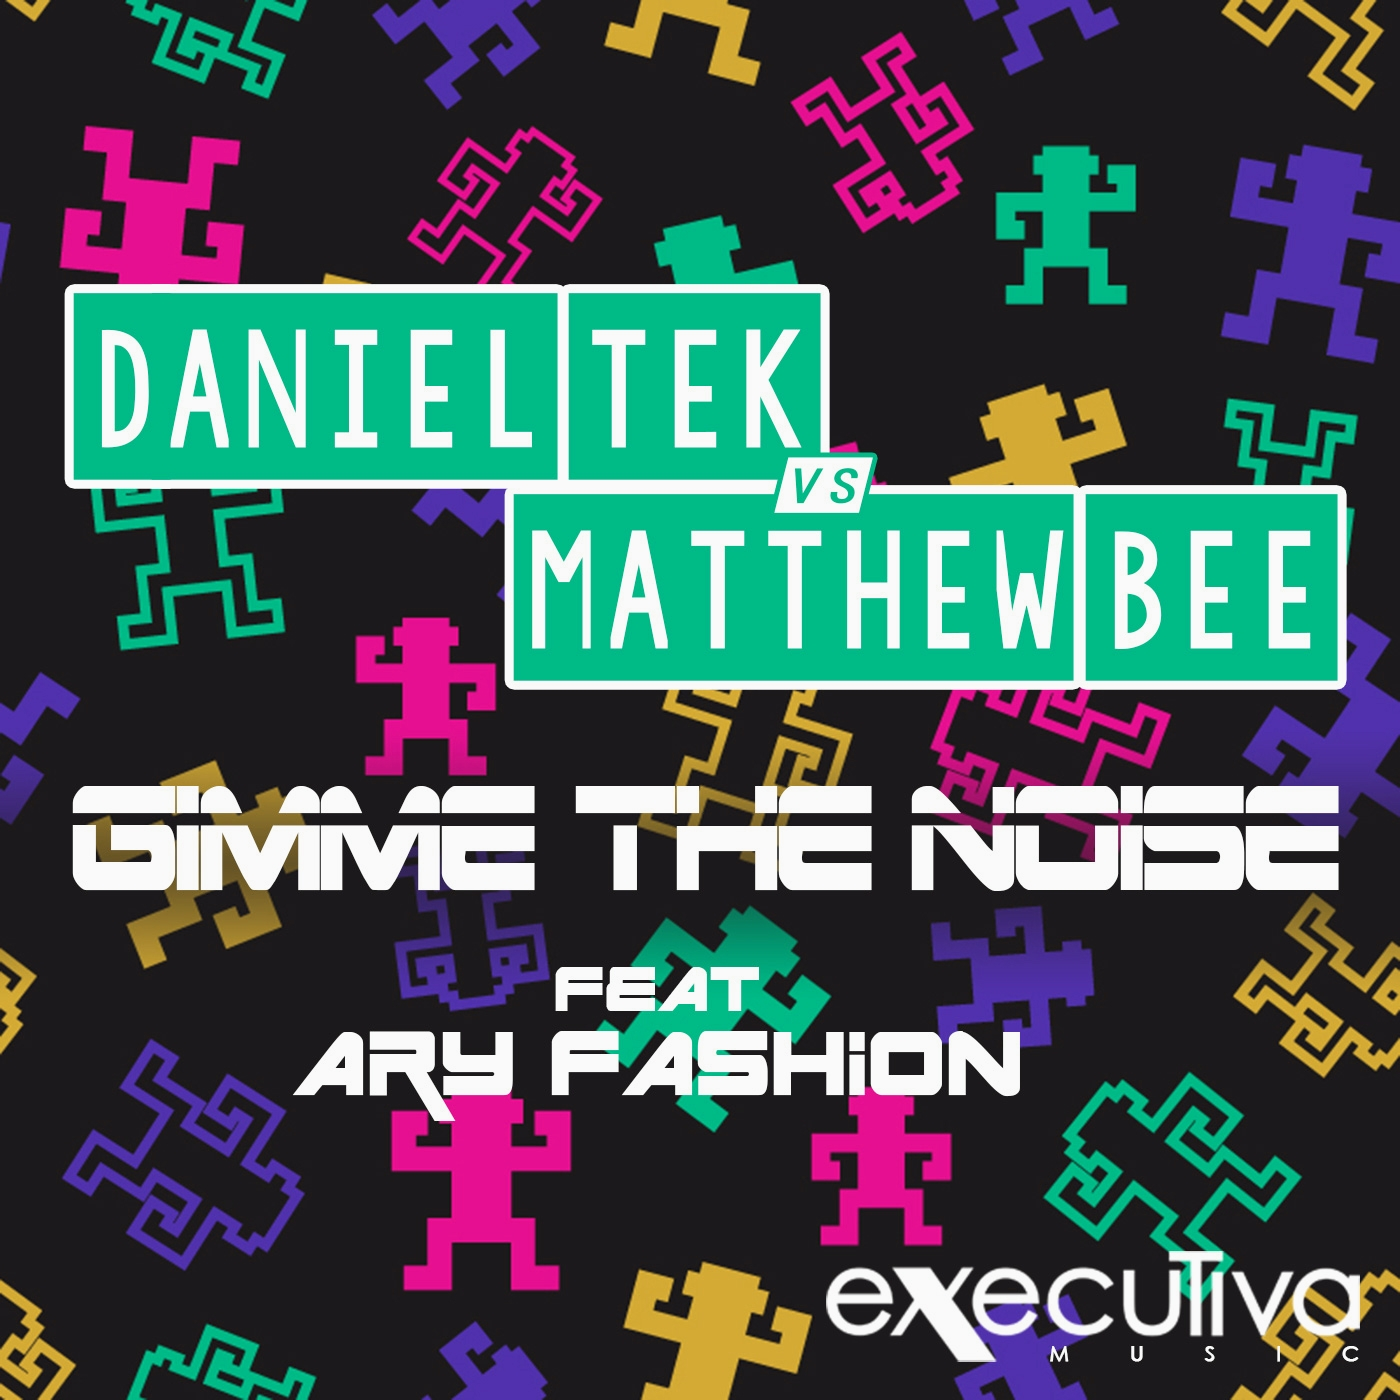 Daniel Tek & Matthew Bee - Gimme The Noise Feat. AryFashion (Daniele Sorrenti Remix)